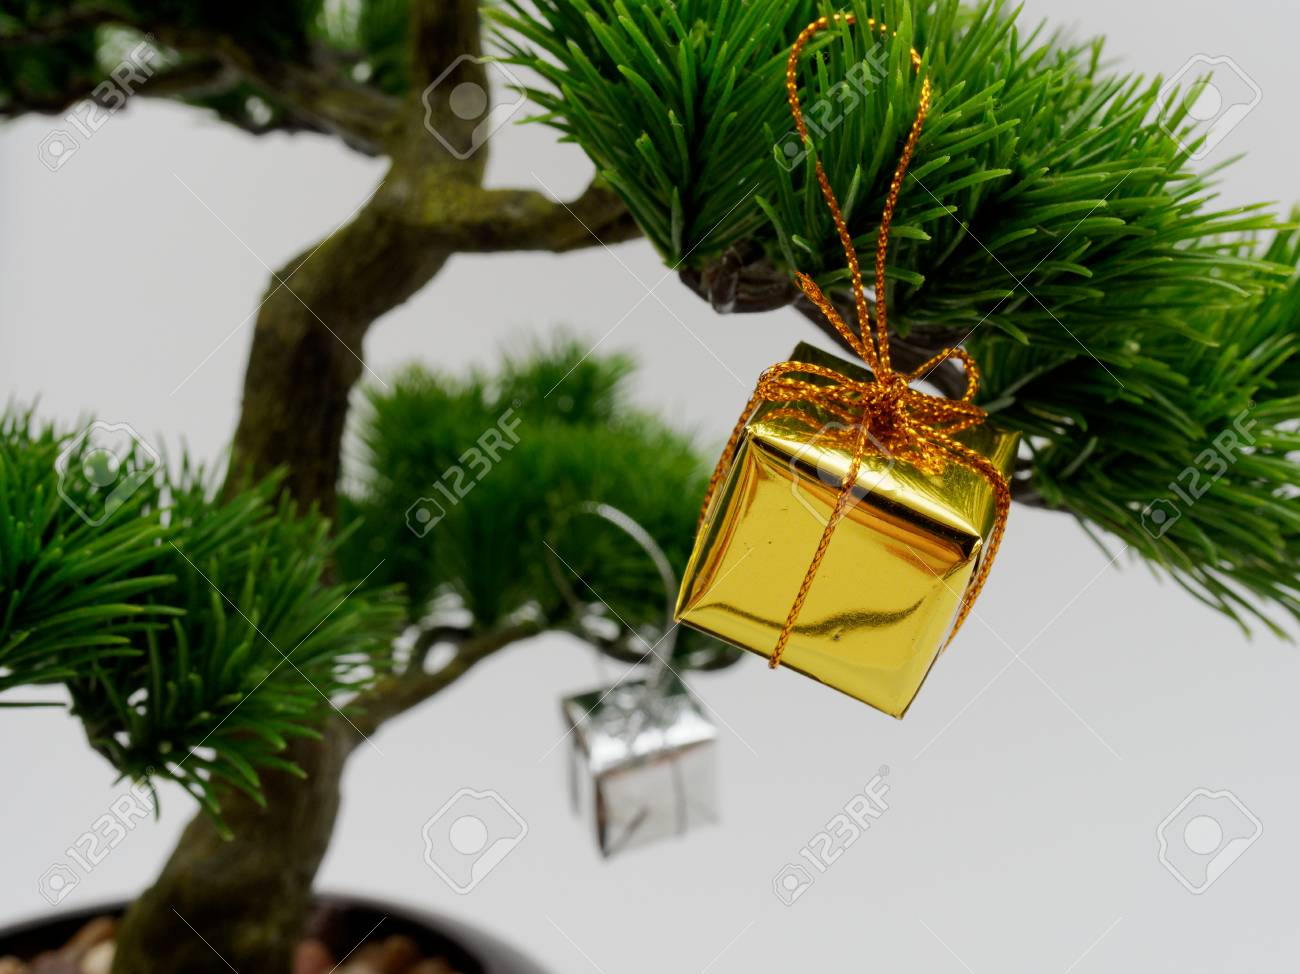 Christmas Decoration Or Ornament Hang On Artificial Bonsai Tree Stock Photo Picture And Royalty Free Image Image 91240006